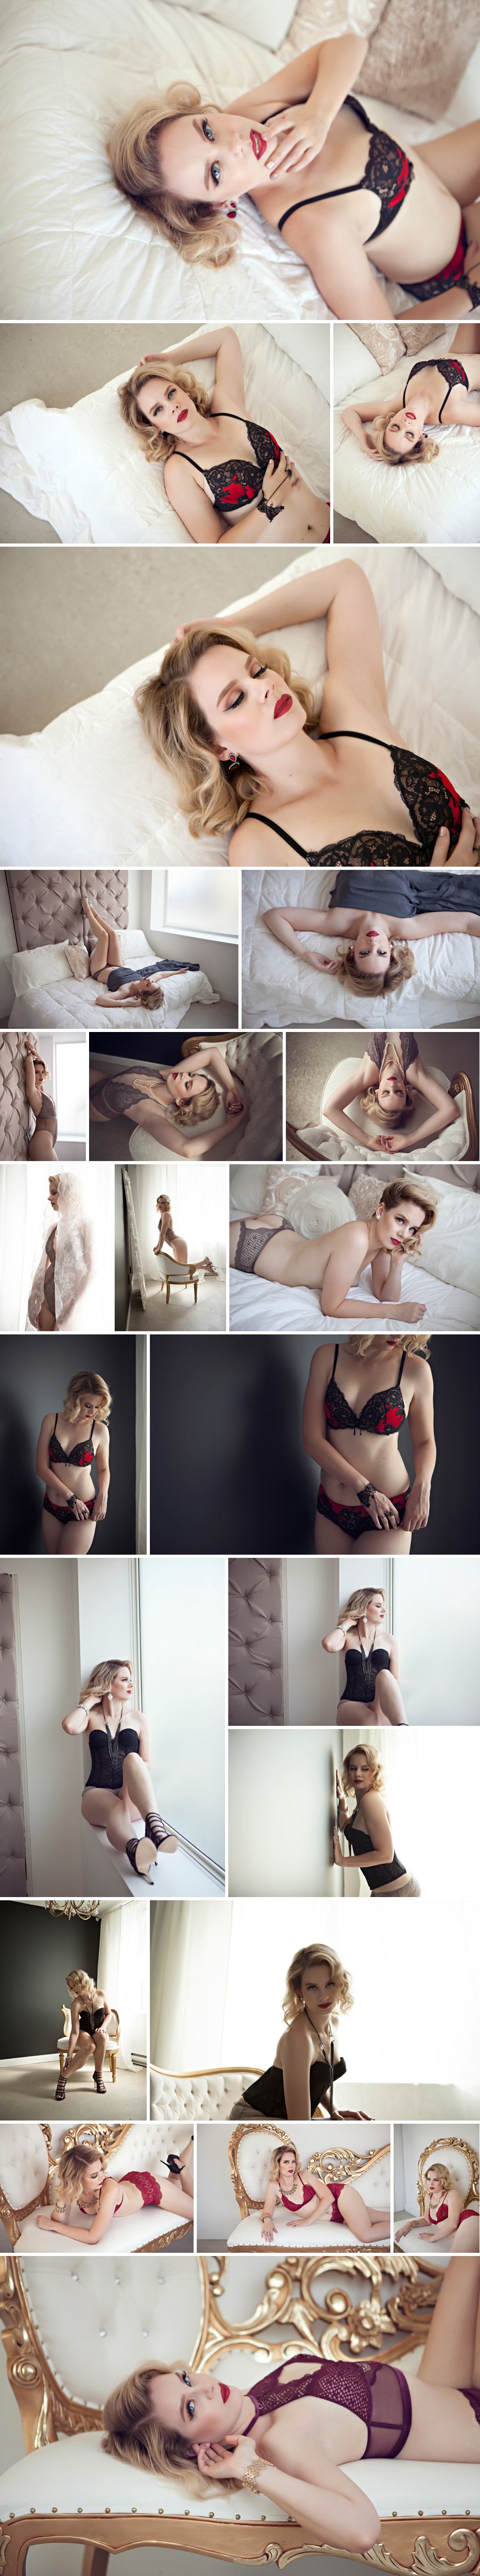 Winnipeg Boudoir Photographers